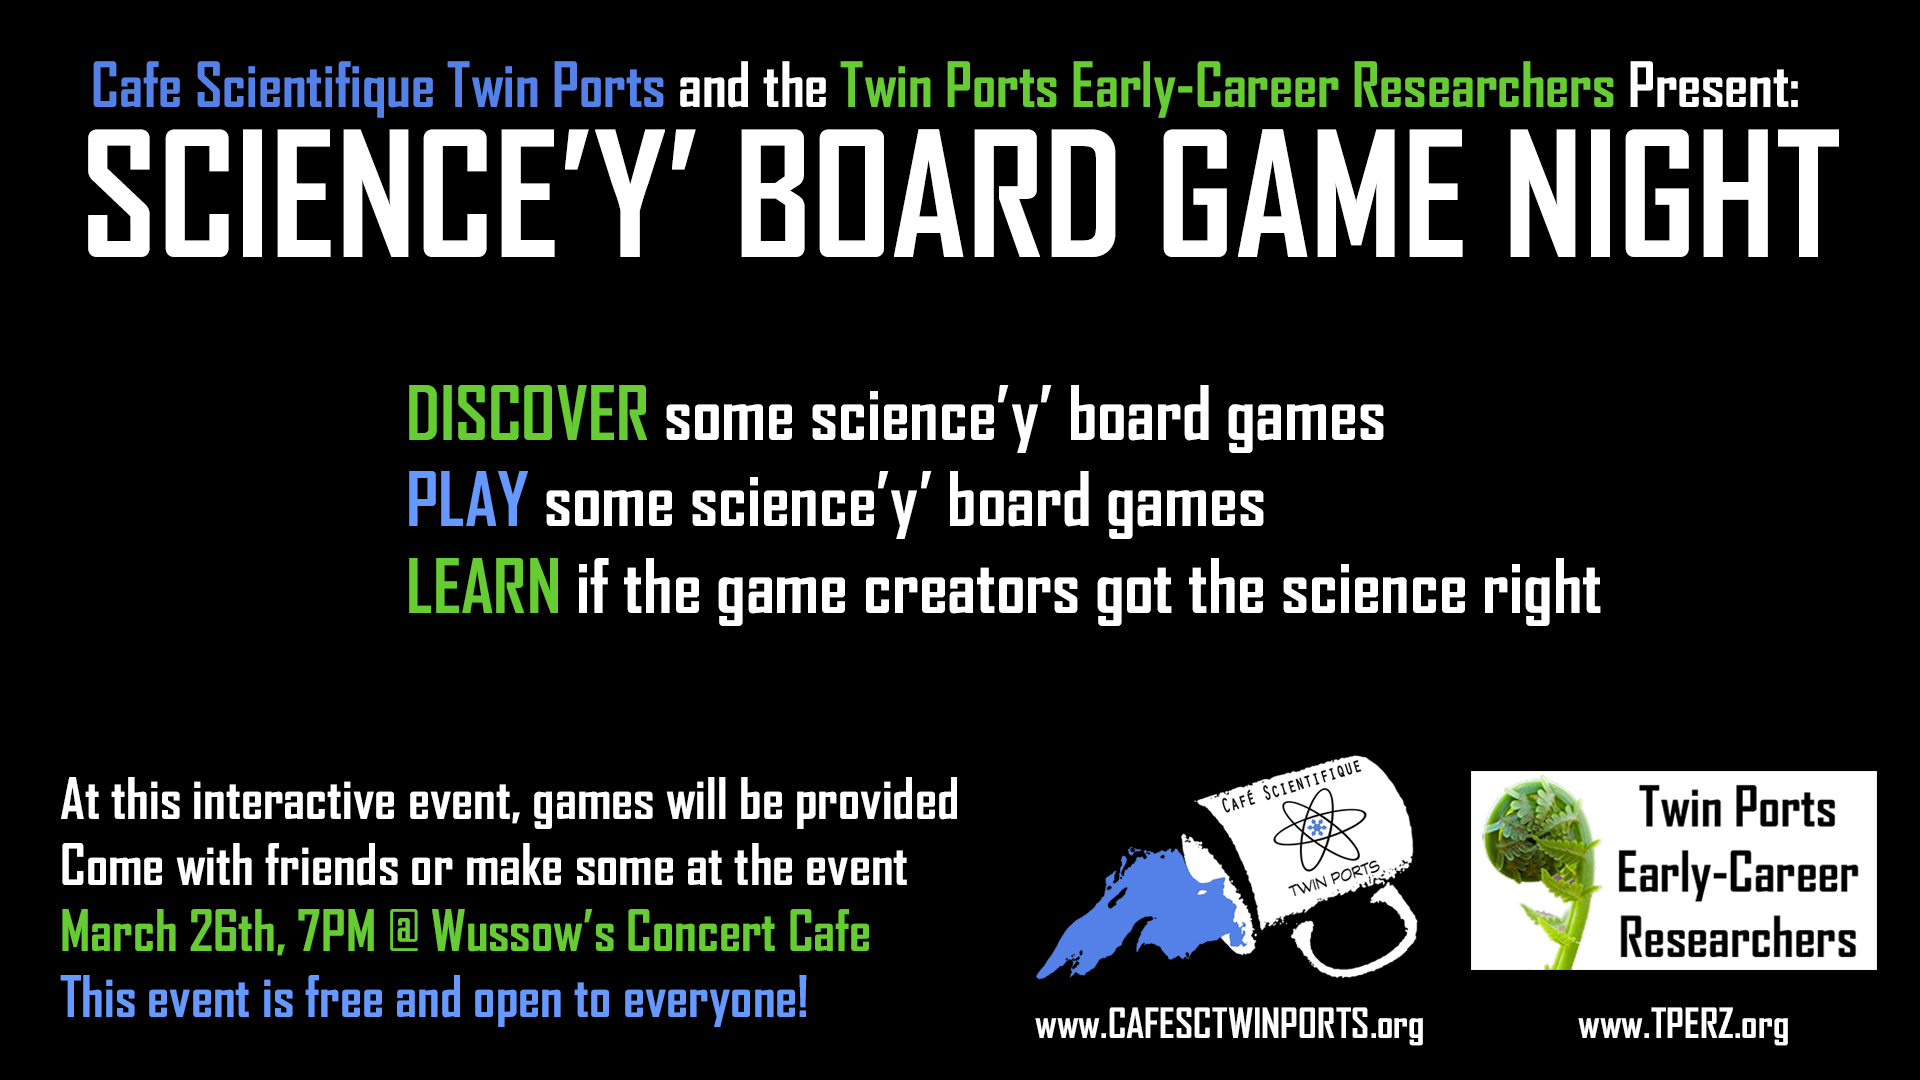 Science'y' Board Game Night – Twin Ports Early-Career Researchers